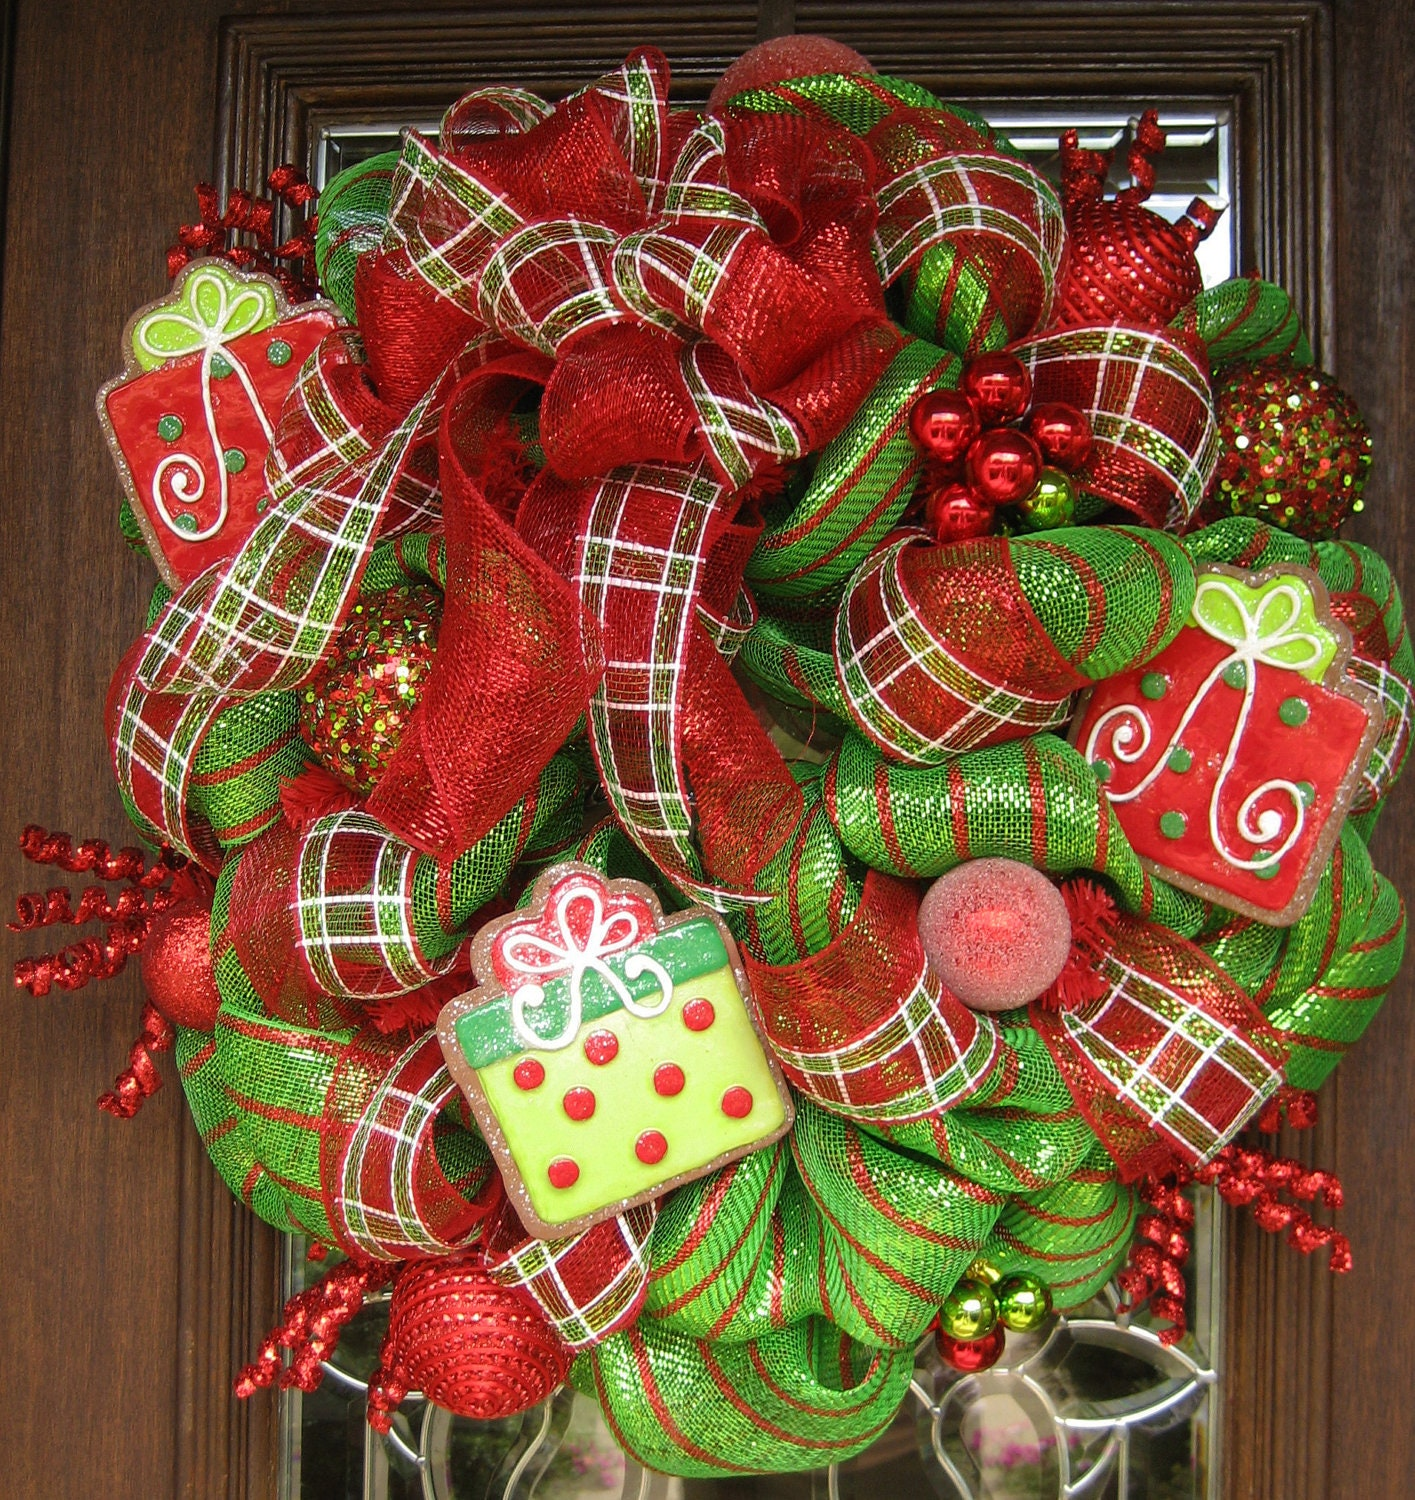 Deco mesh whimsical bow and presents christmas wreath Christmas wreath decorations